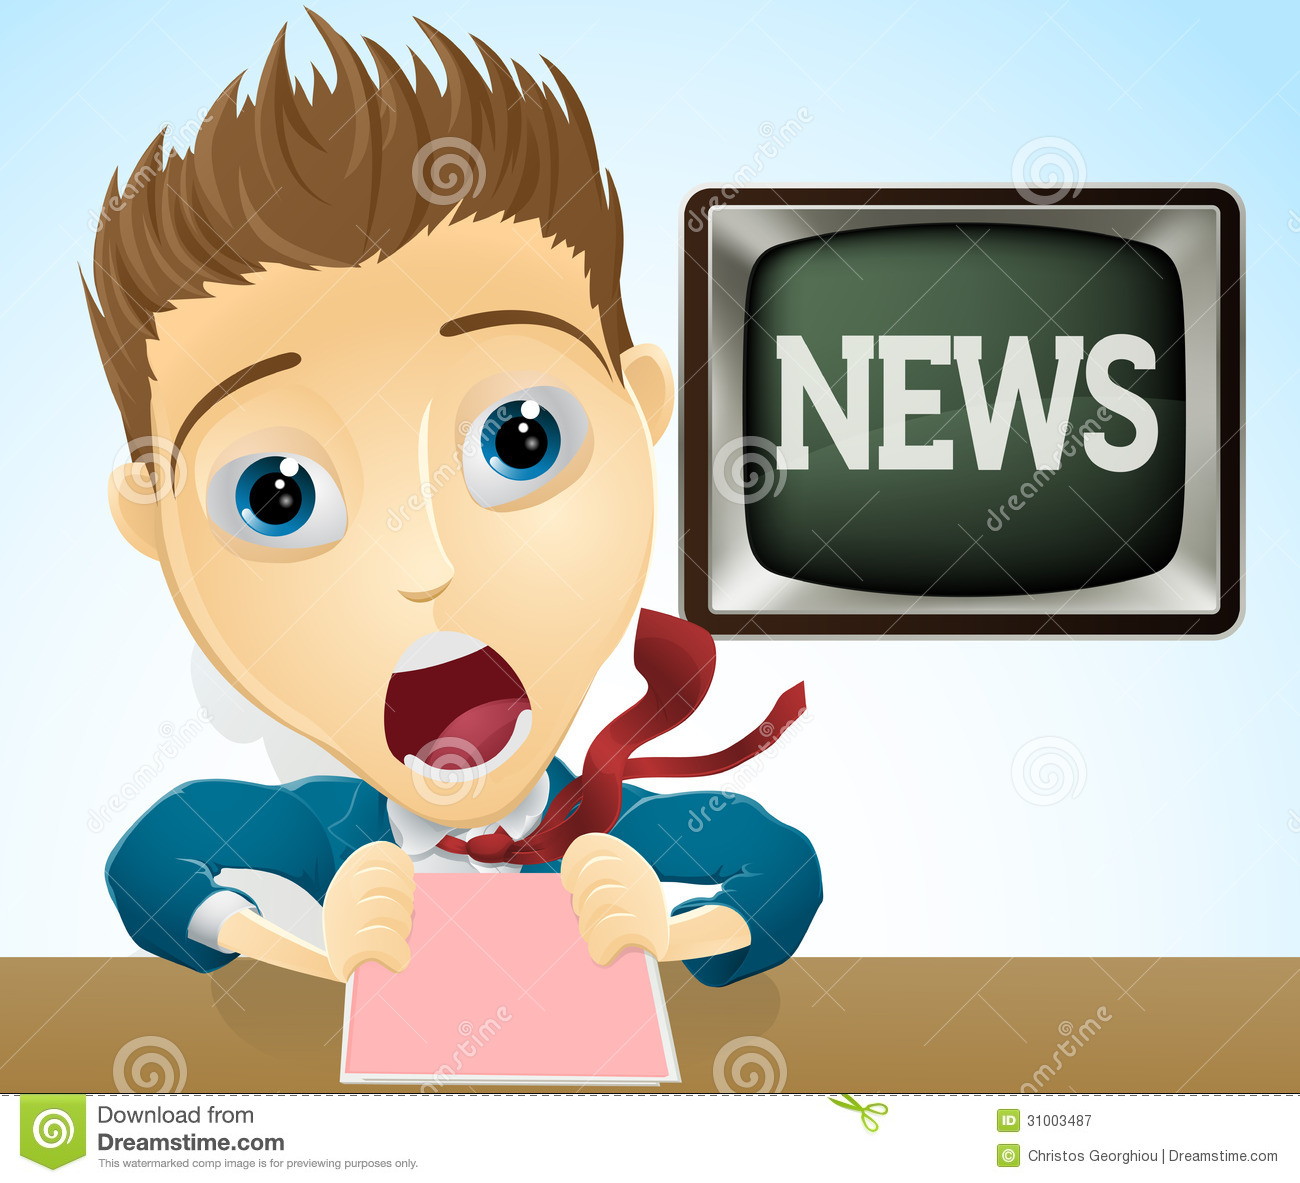 Television news and the internet essay